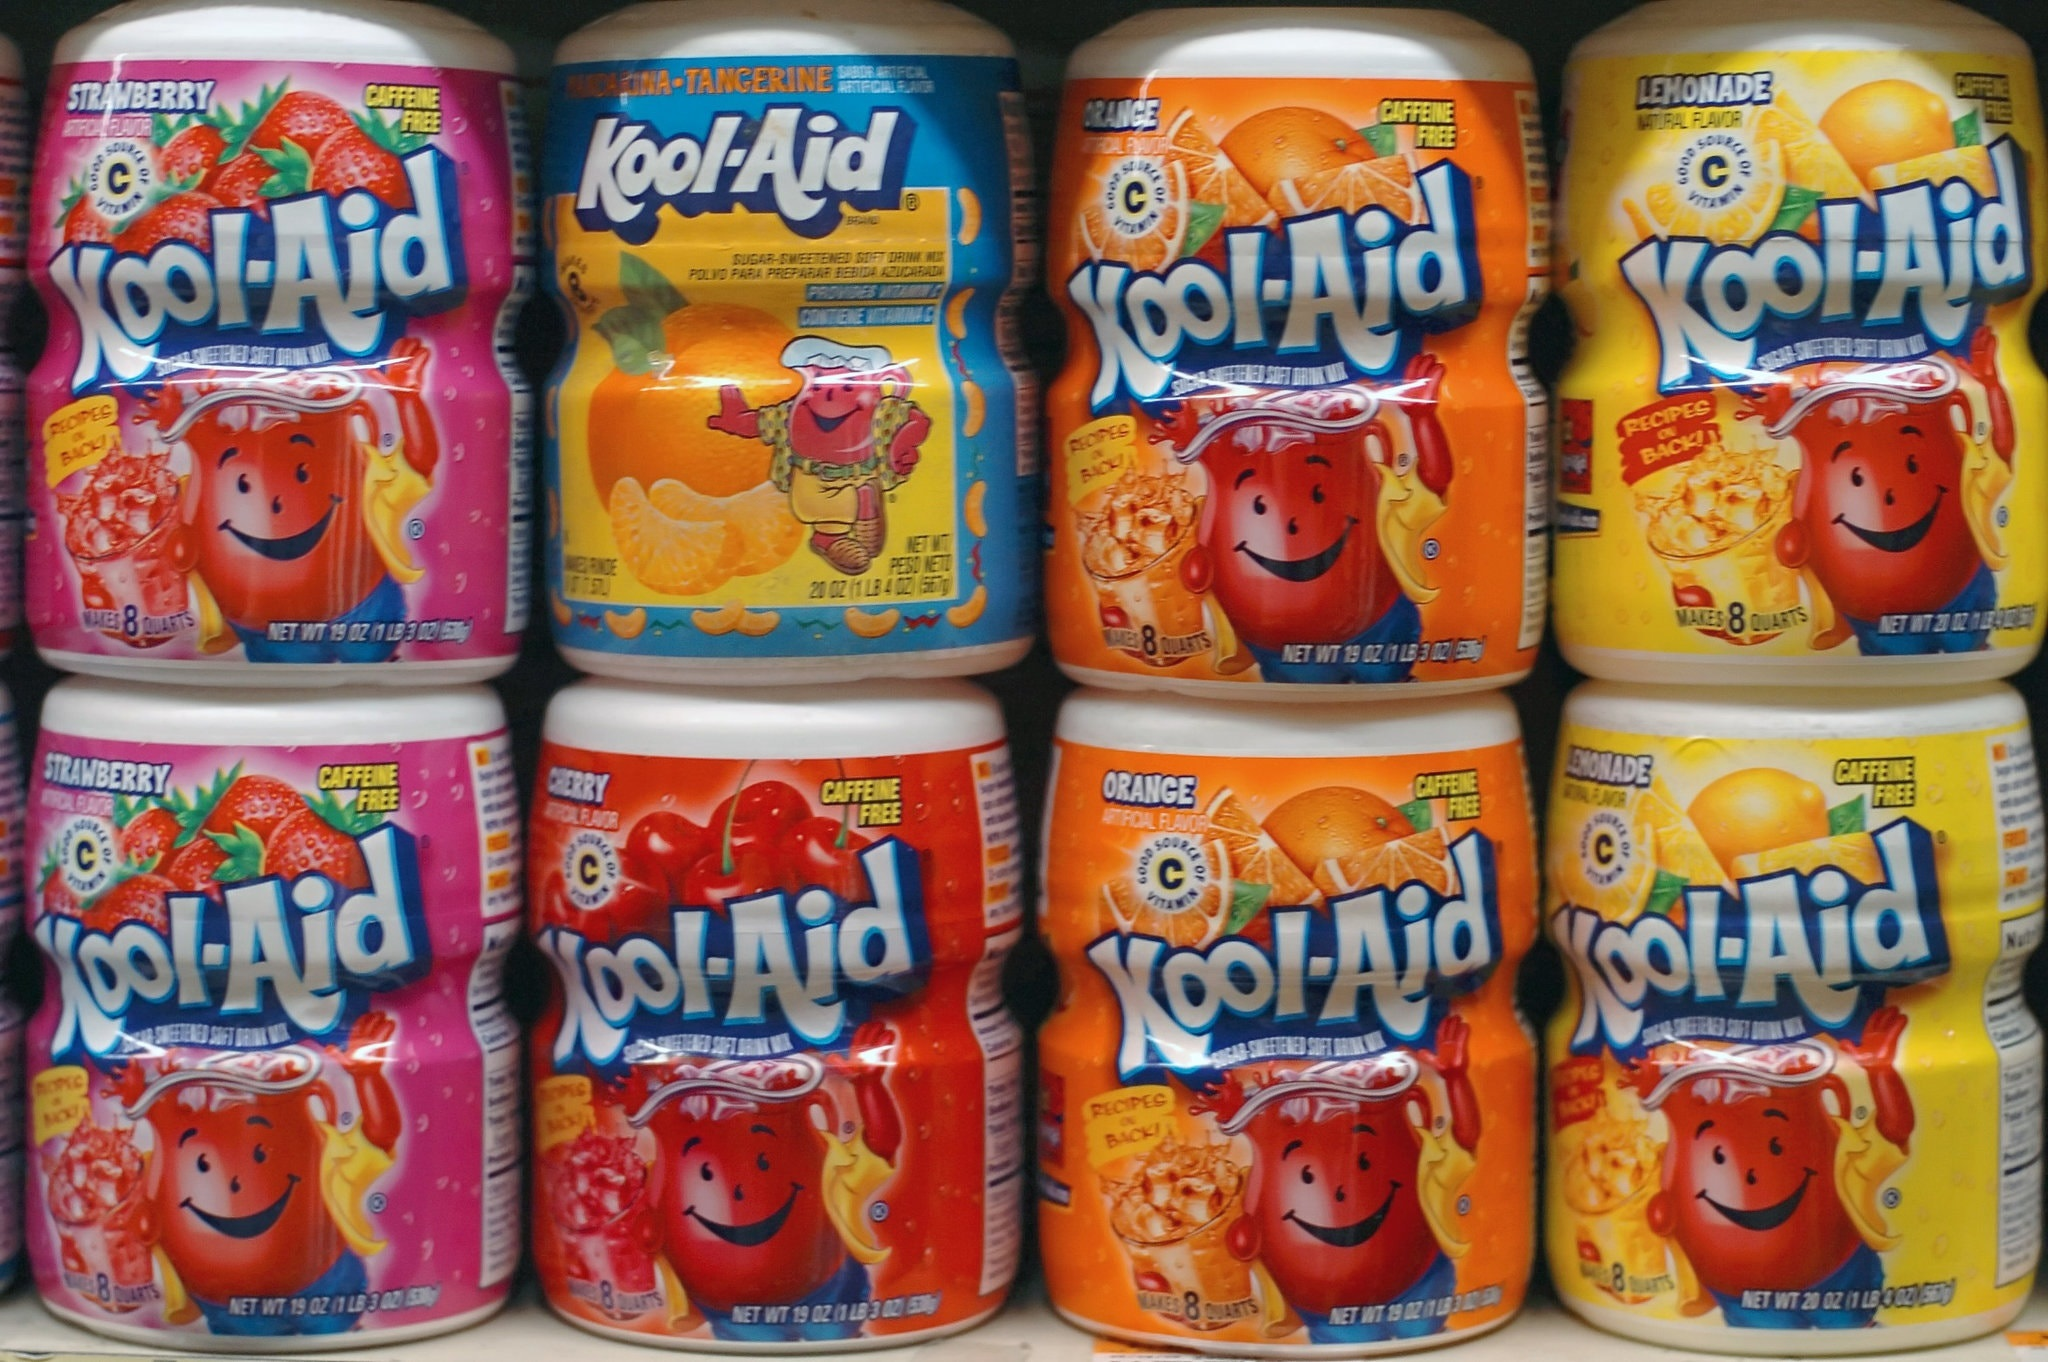 Kool-Aid containers on shelf